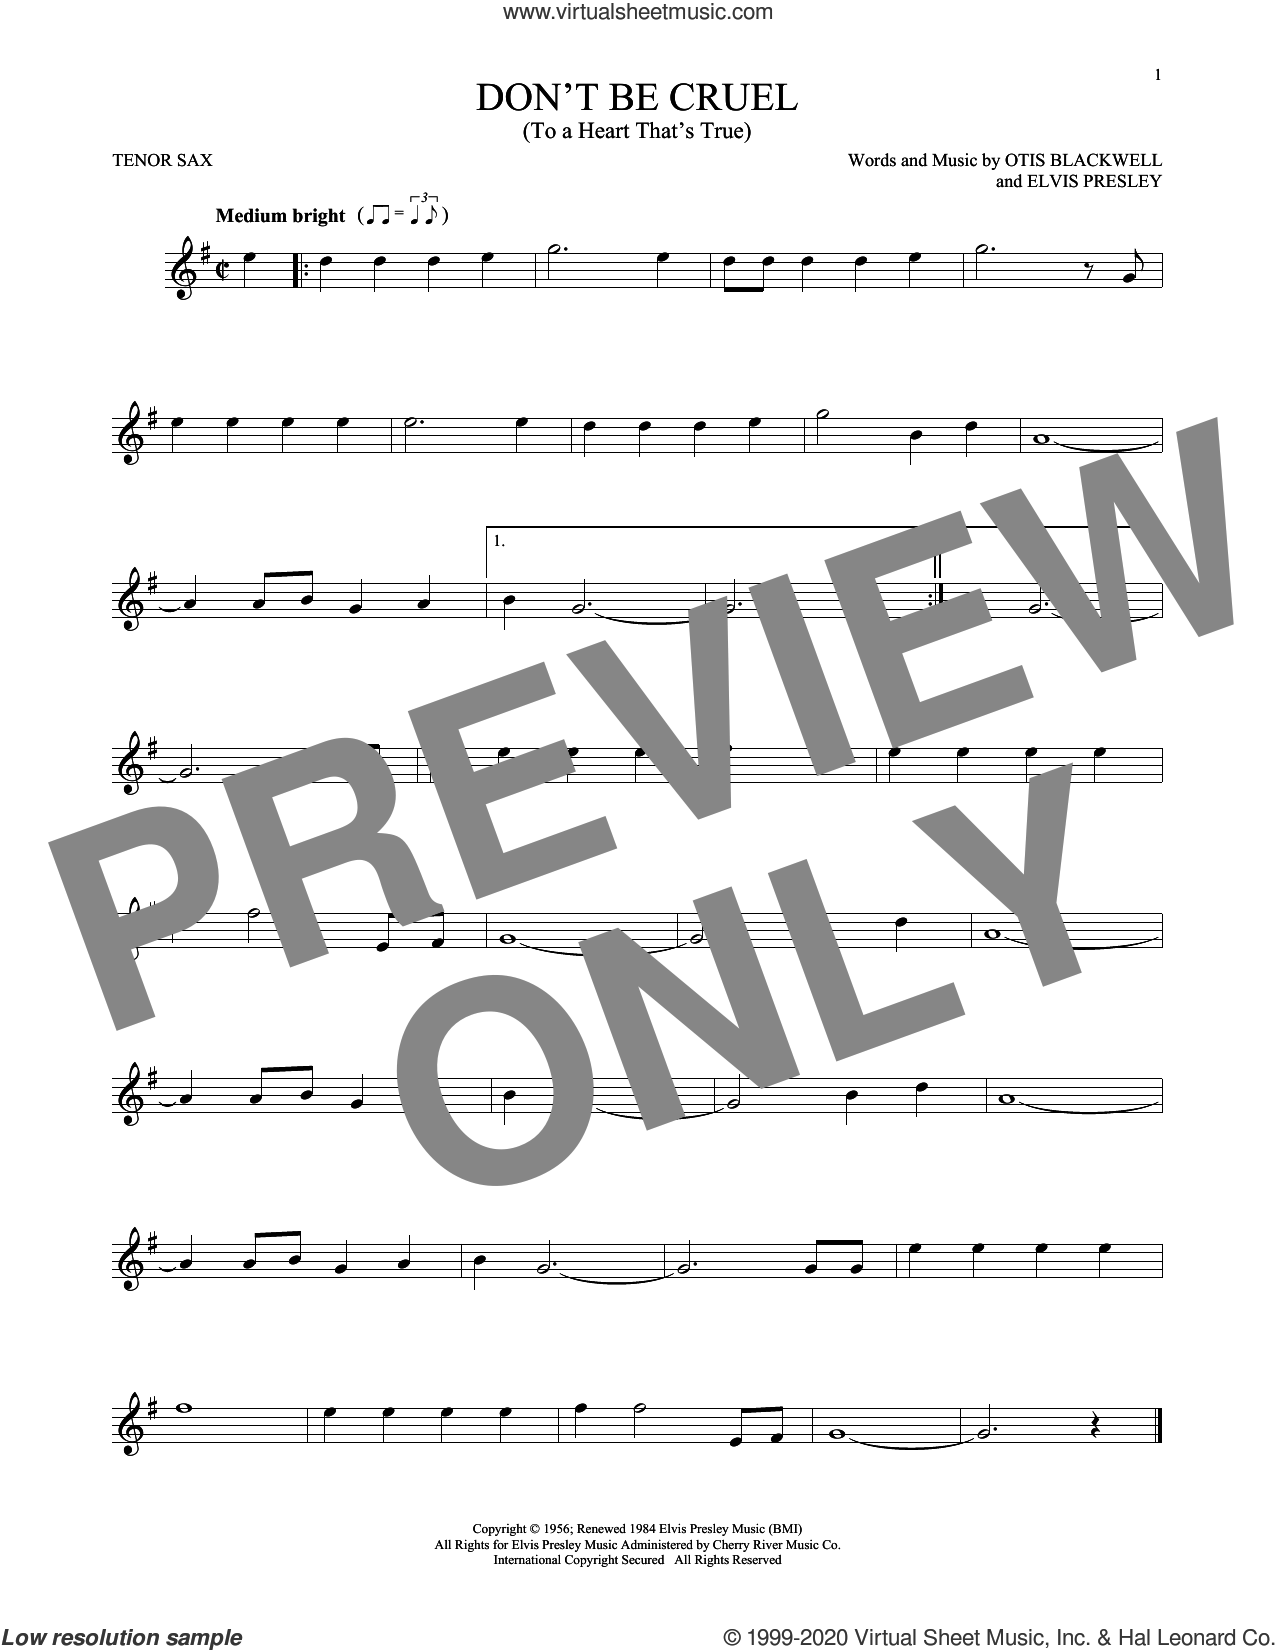 Don't Be Cruel (To A Heart That's True) sheet music for tenor saxophone solo by Elvis Presley and Otis Blackwell, intermediate skill level